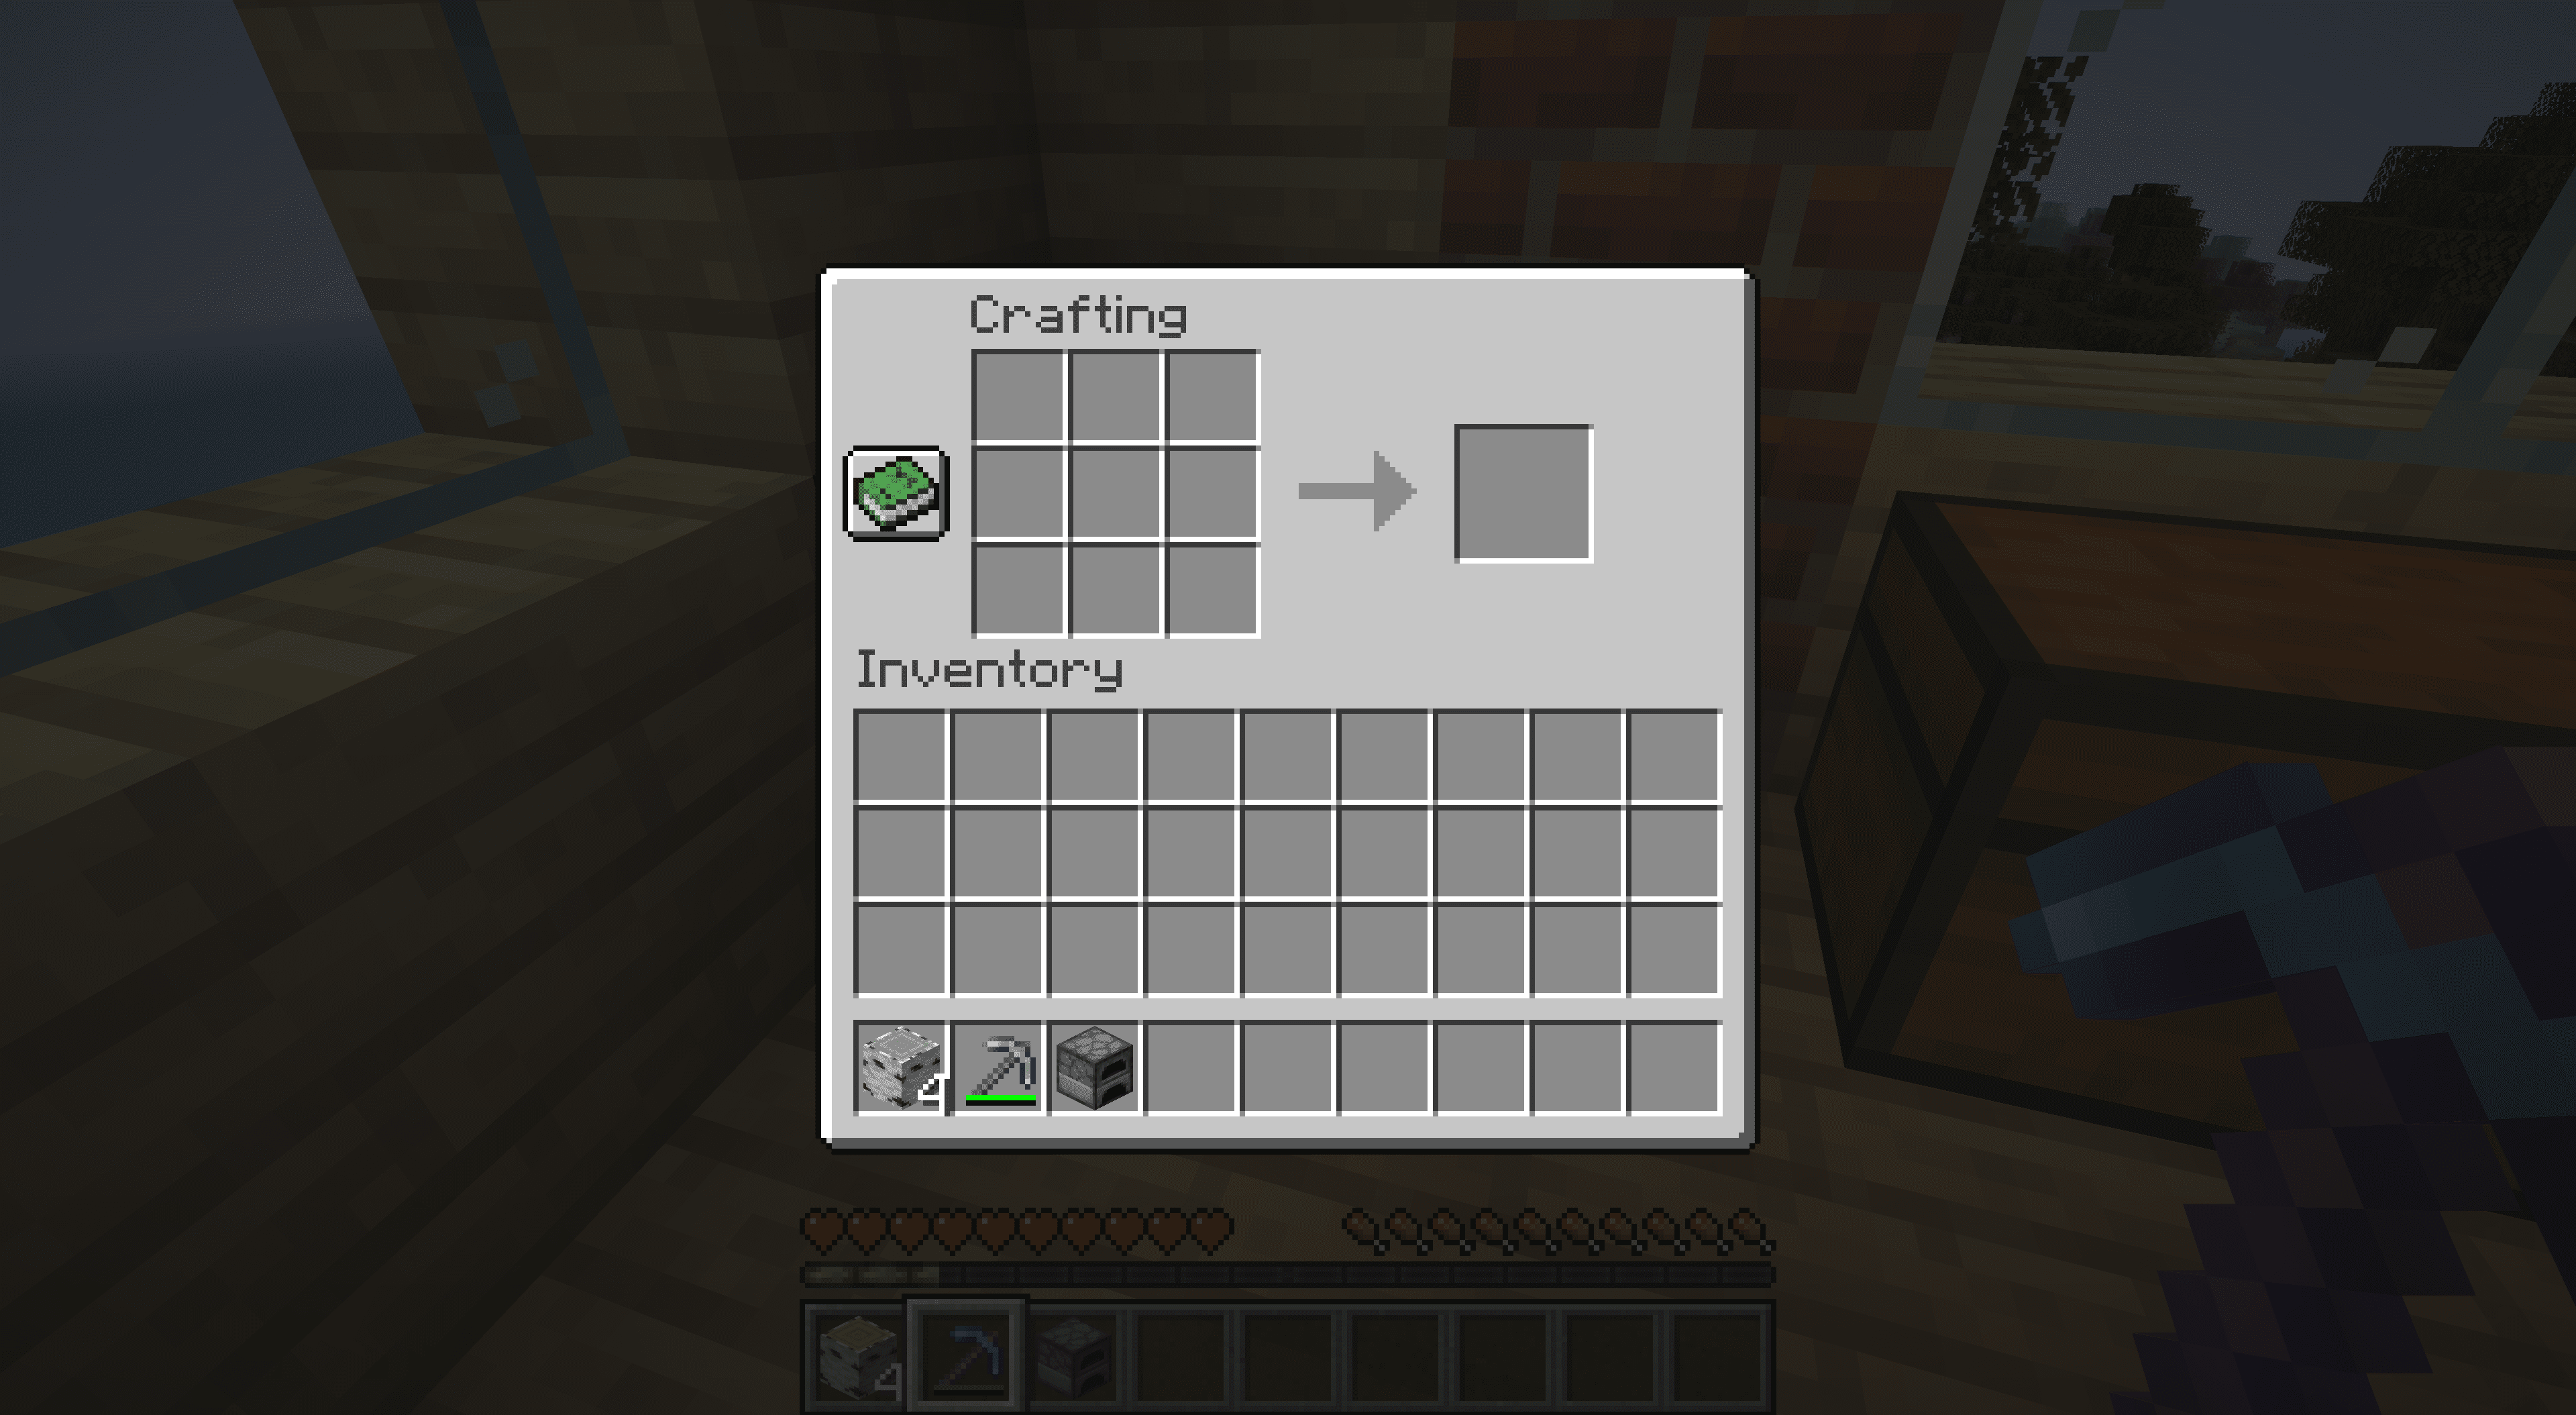 The crating table interface in Minecraft.